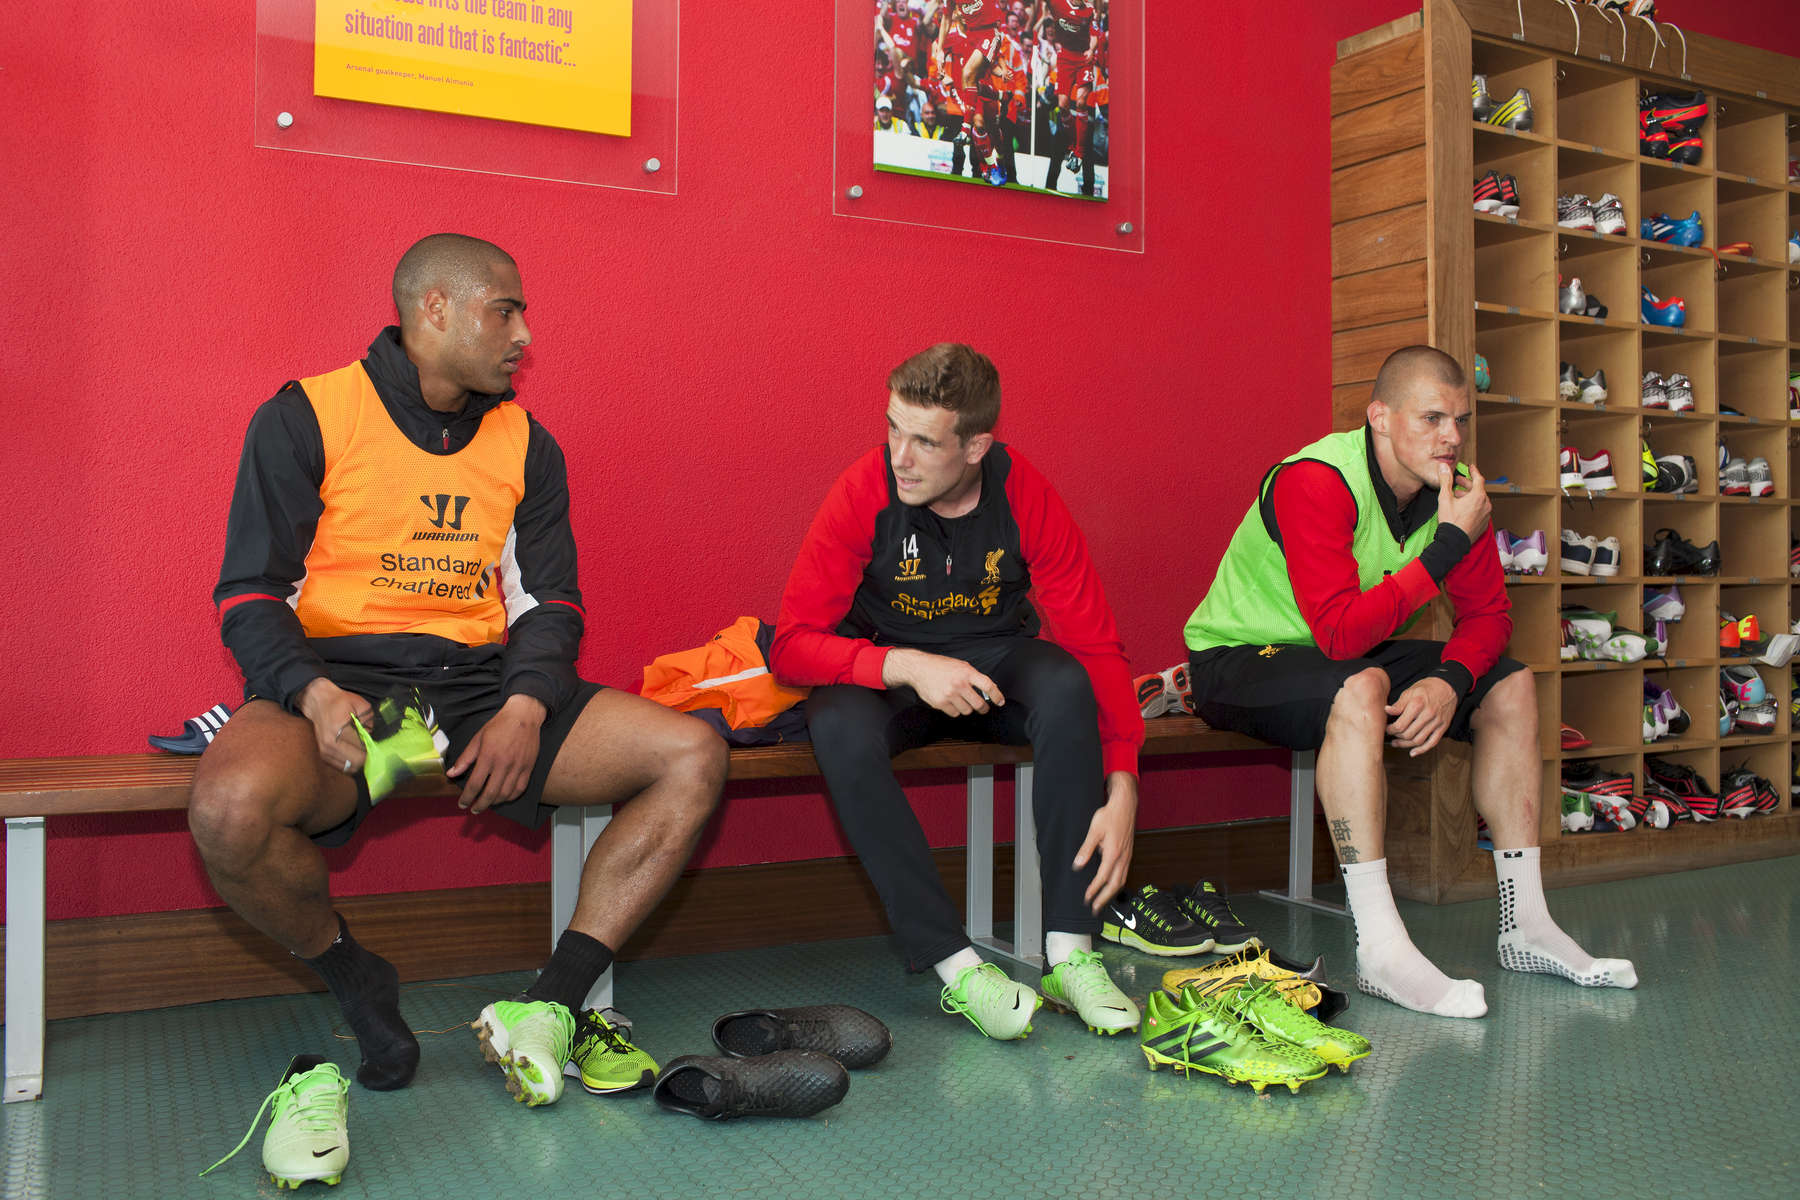 Liverpool FC players (from left) Glen Johnson, Jordan Henderson and Martin Skrtel after training at Melwood.Melwood is the Liverpool FC training ground, located in the West Derby area of Liverpool. It is seperate from the Liverpool Academy, which is based in Kirkby.Melwood was redeveloped in the early 2000′s with large input from then-manager Gerard Houllier and now features some of the best facilities in Europe. It has been the club's training ground since the fifties and was previously transformed into a top class facility by Bill Shankly.Facilities include sythetic pitches, rehabilitation rooms, press and meeting rooms, gymnasium, swimming pool, restaurant and recreational facilities.